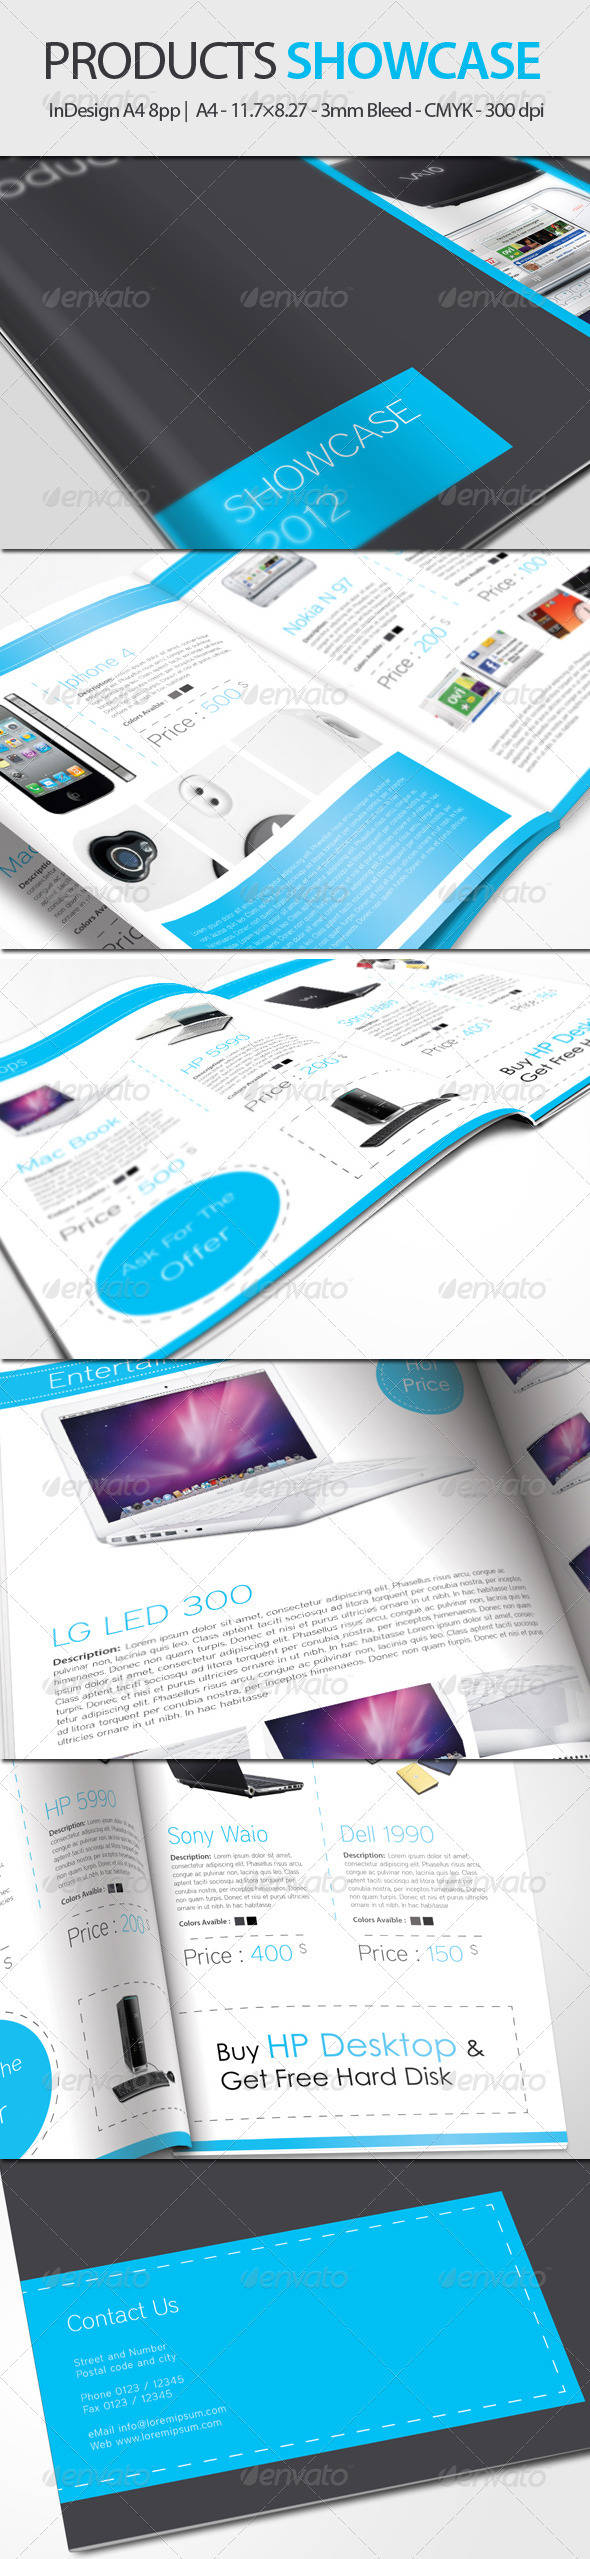 Products Showcase  - InDesign A4 8pp - Catalogs Brochures